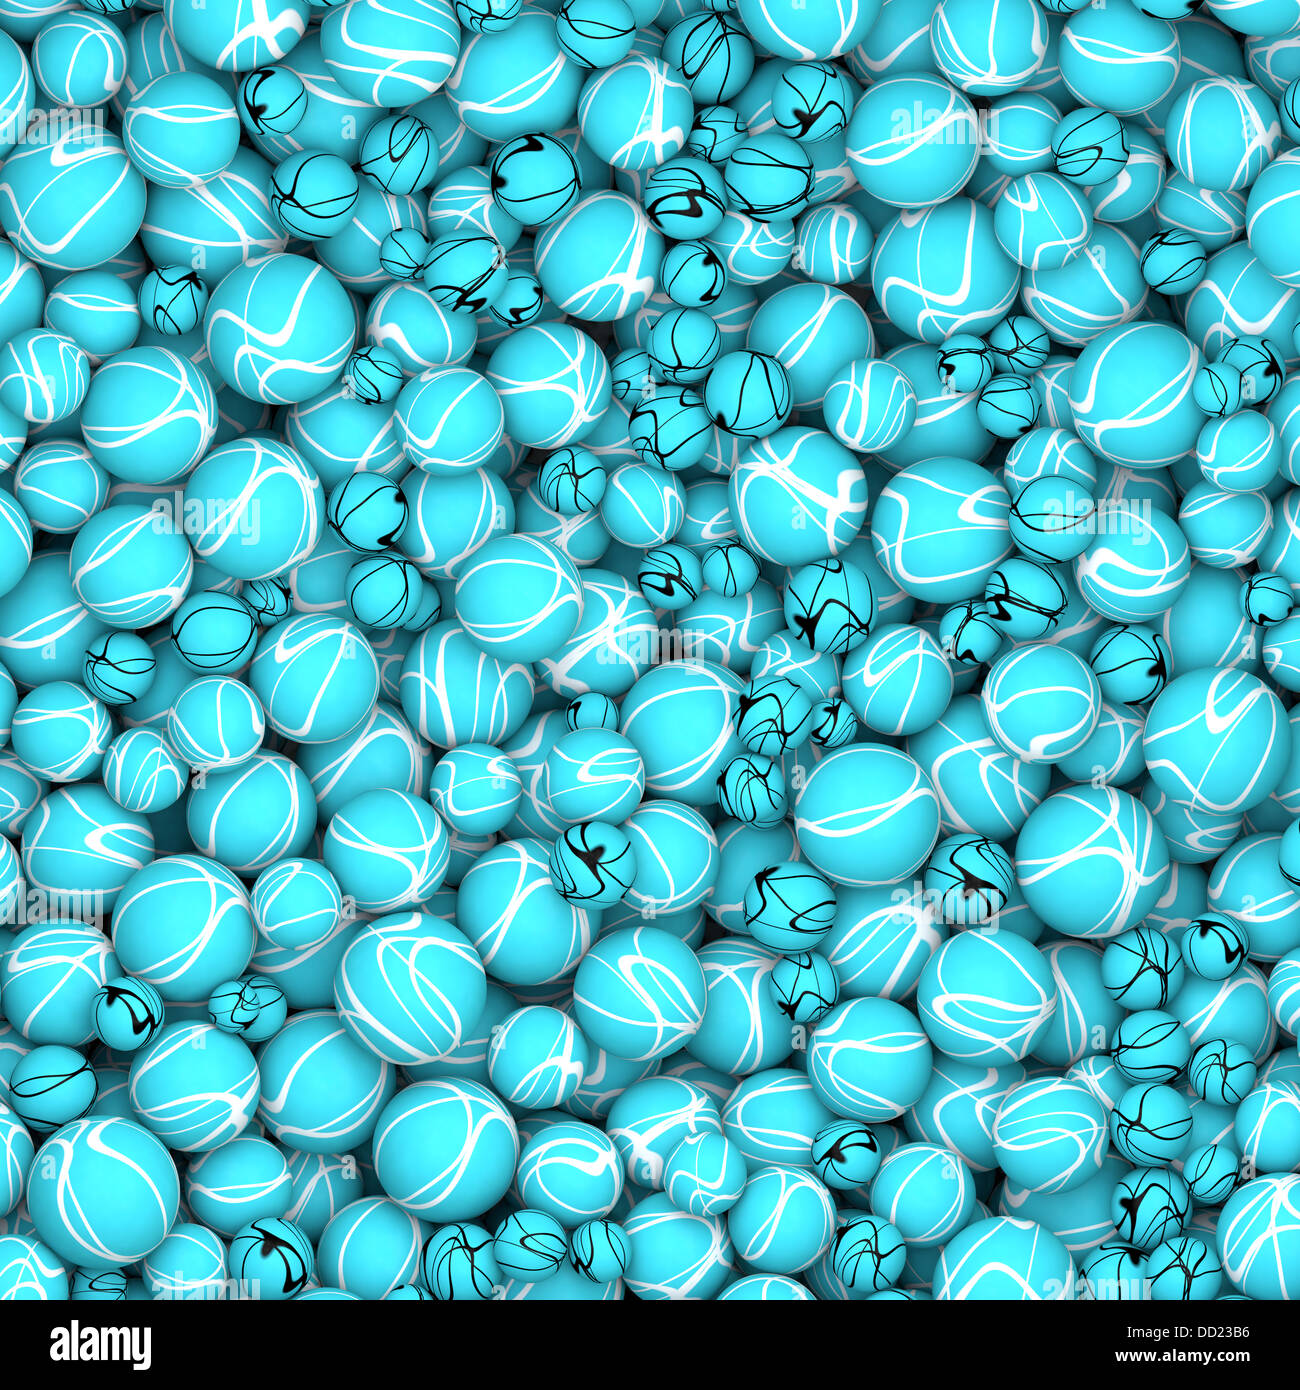 Wallpaper Of Abstract Textured Pearls In Turquoise And White